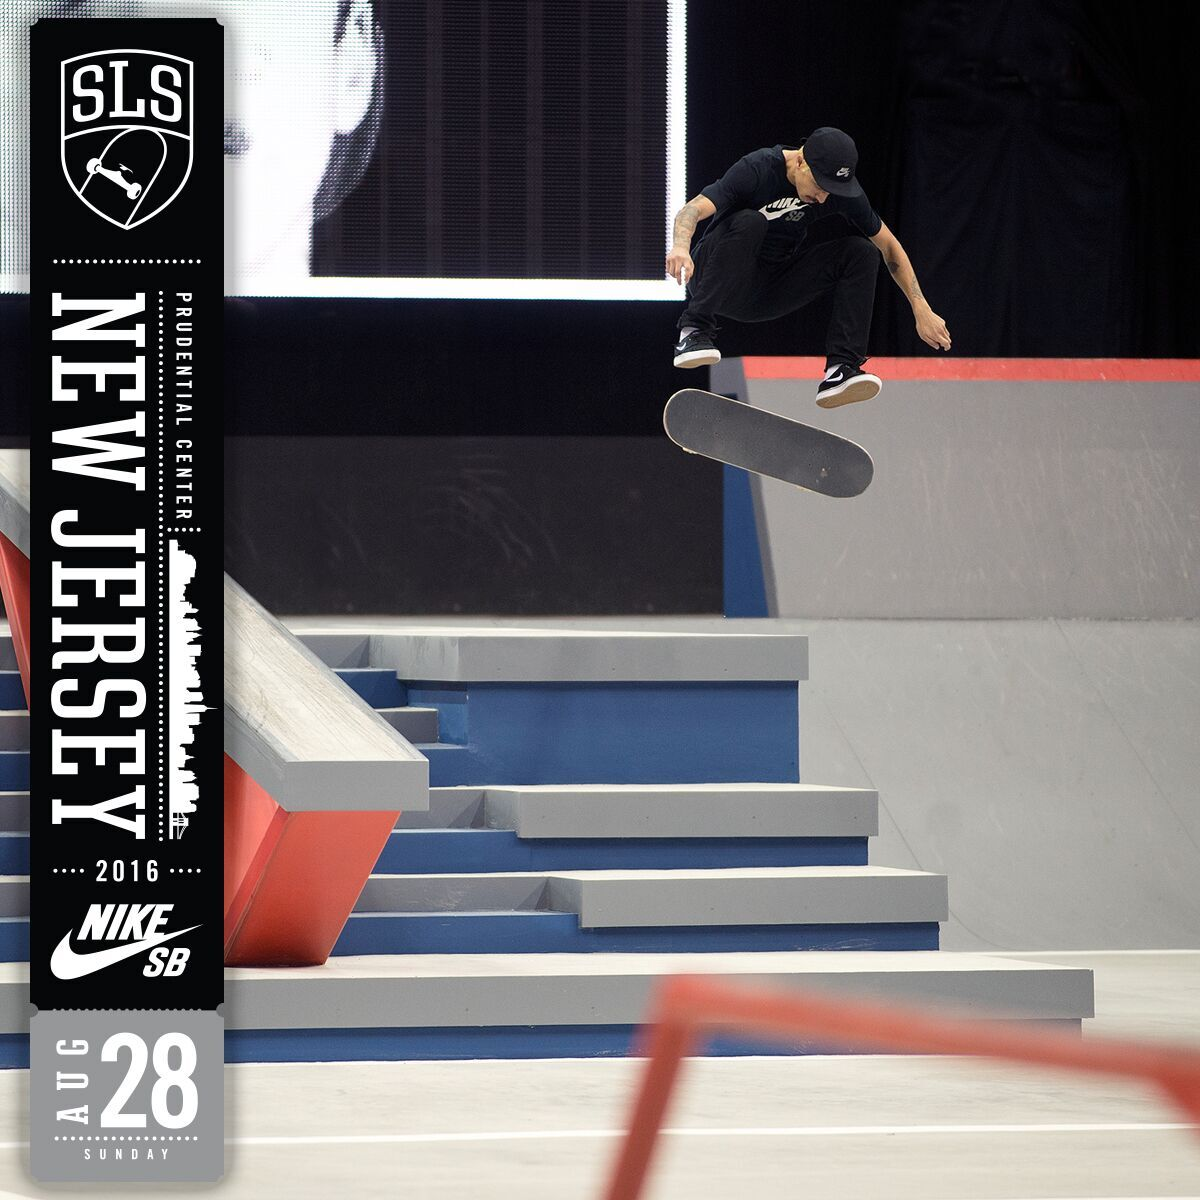 2016 Street League Skateboarding (SLS) Nike SB World Tour in New Jersey